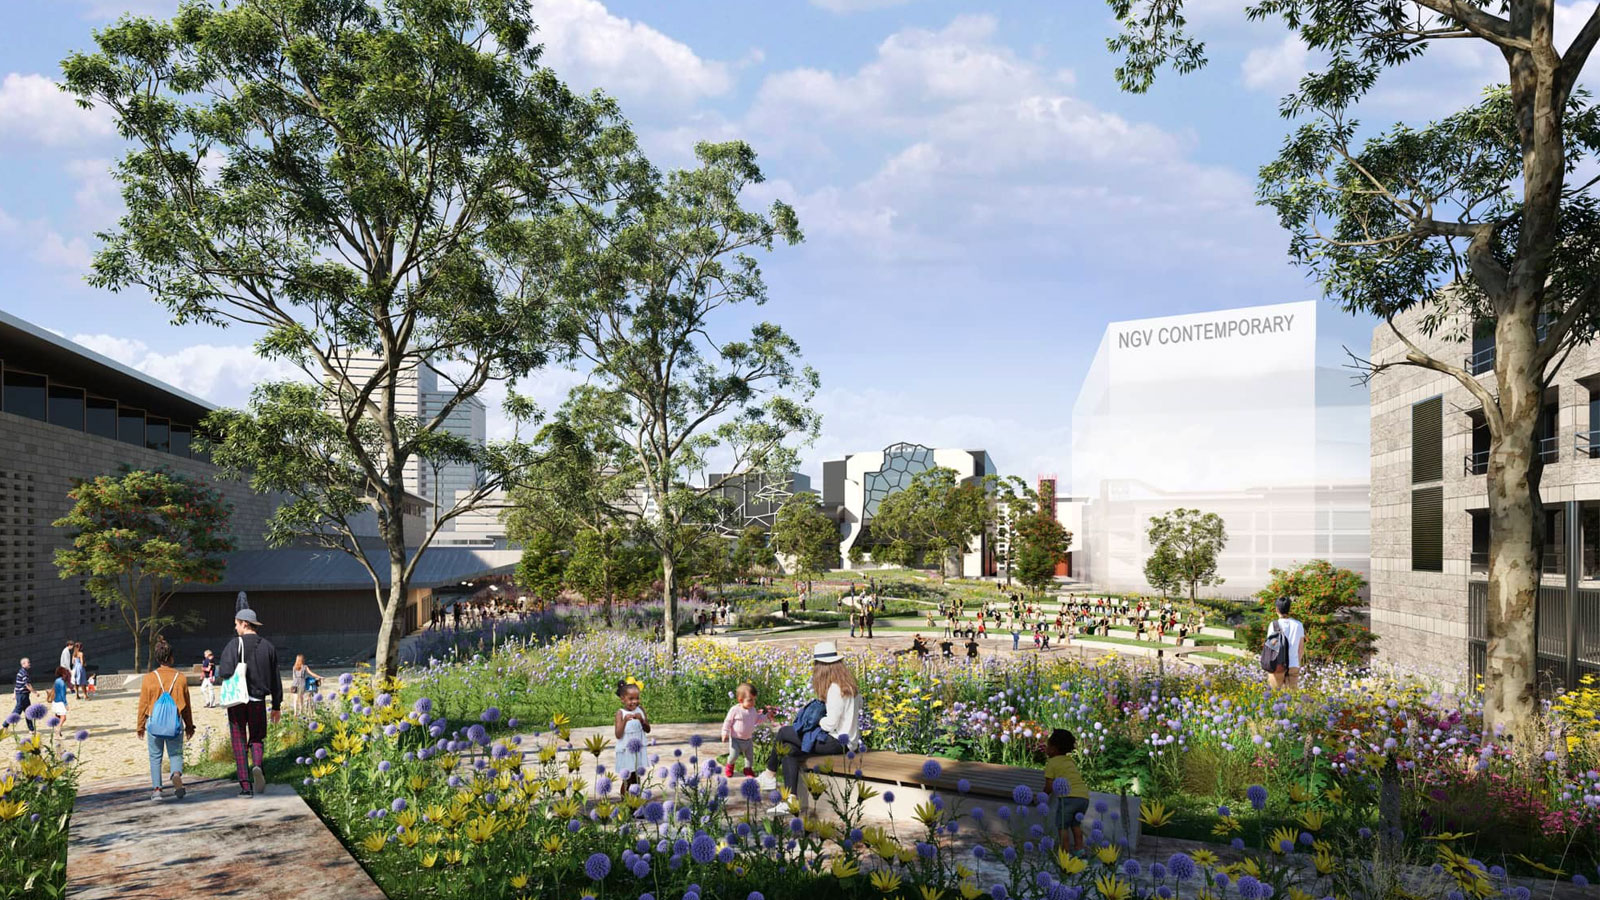 The redevelopment of the Melbourne Arts Precinct, masterplanned by ARM Architecture and TCL, was first announced in 2018.